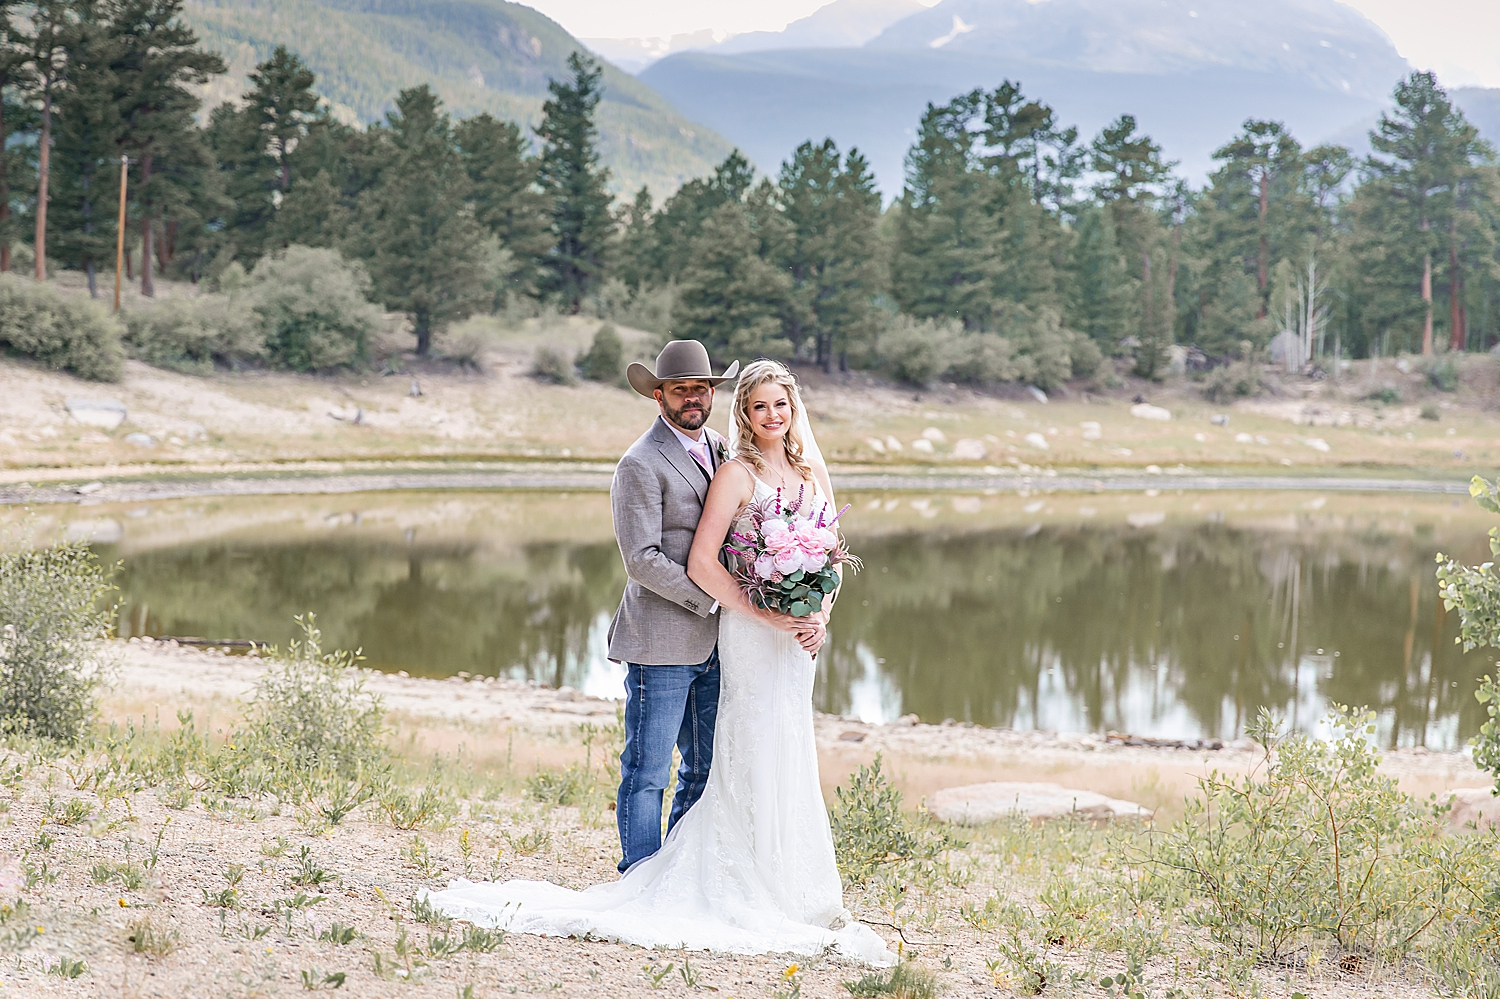 Carly-Barton-Photography-Rocky-Mountain-National-Park-Estes-Park-Wedding-Elopement_0031.jpg